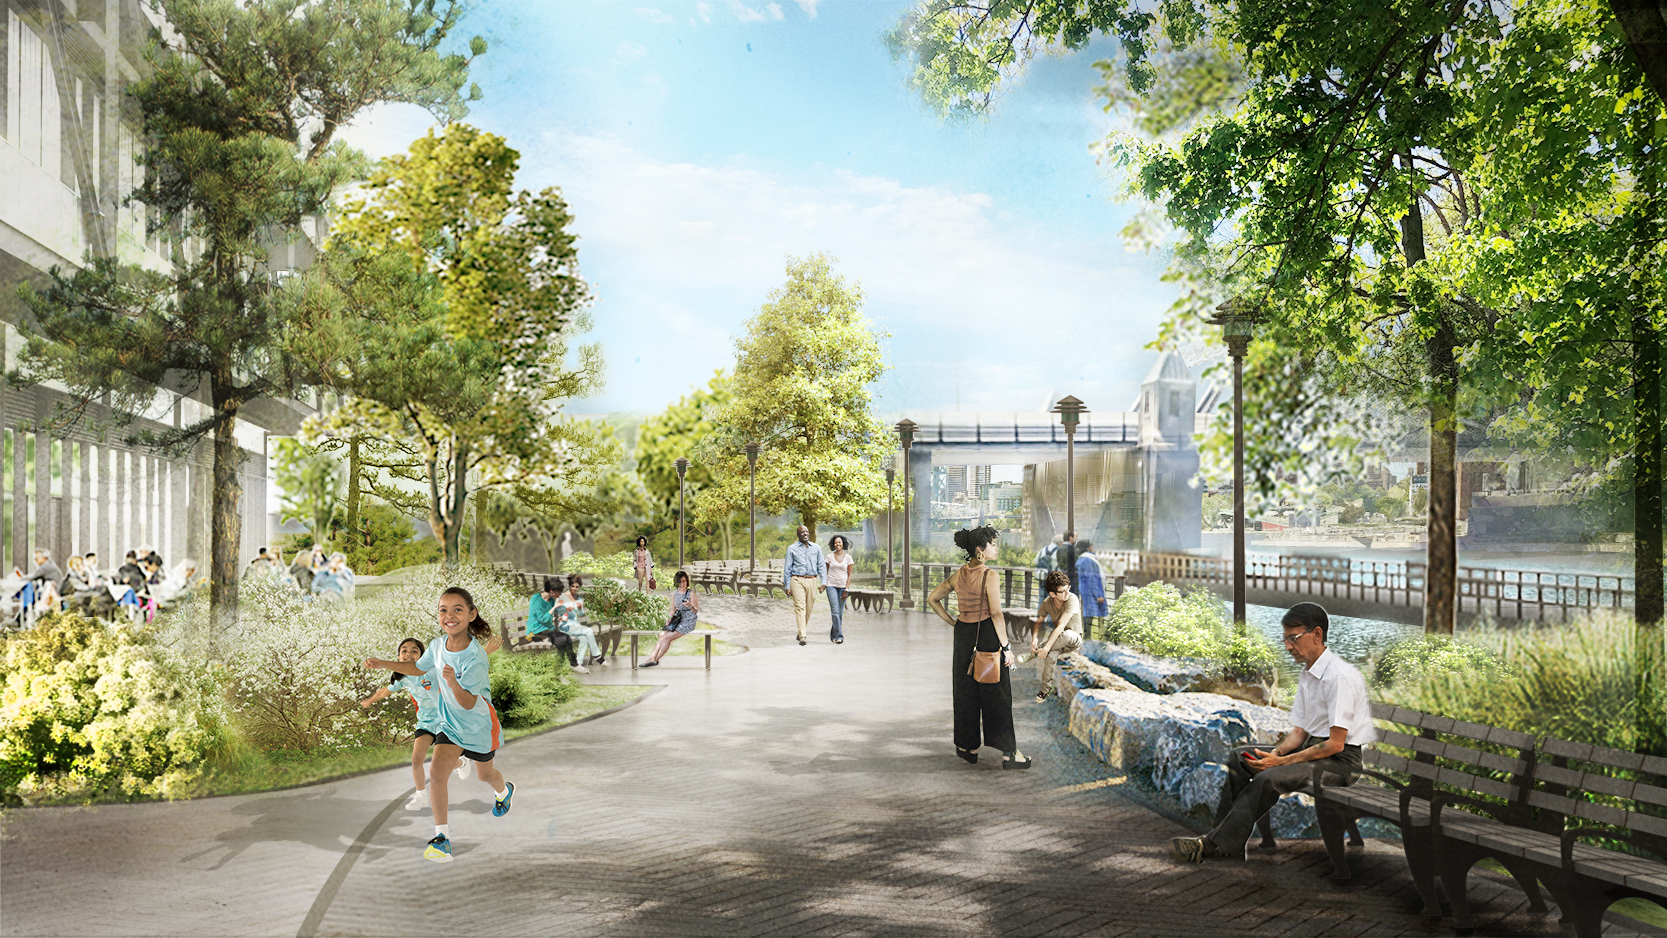 illustration of people enjoying an urban green space, one of the 2020 Awards for Excellence in Design winners